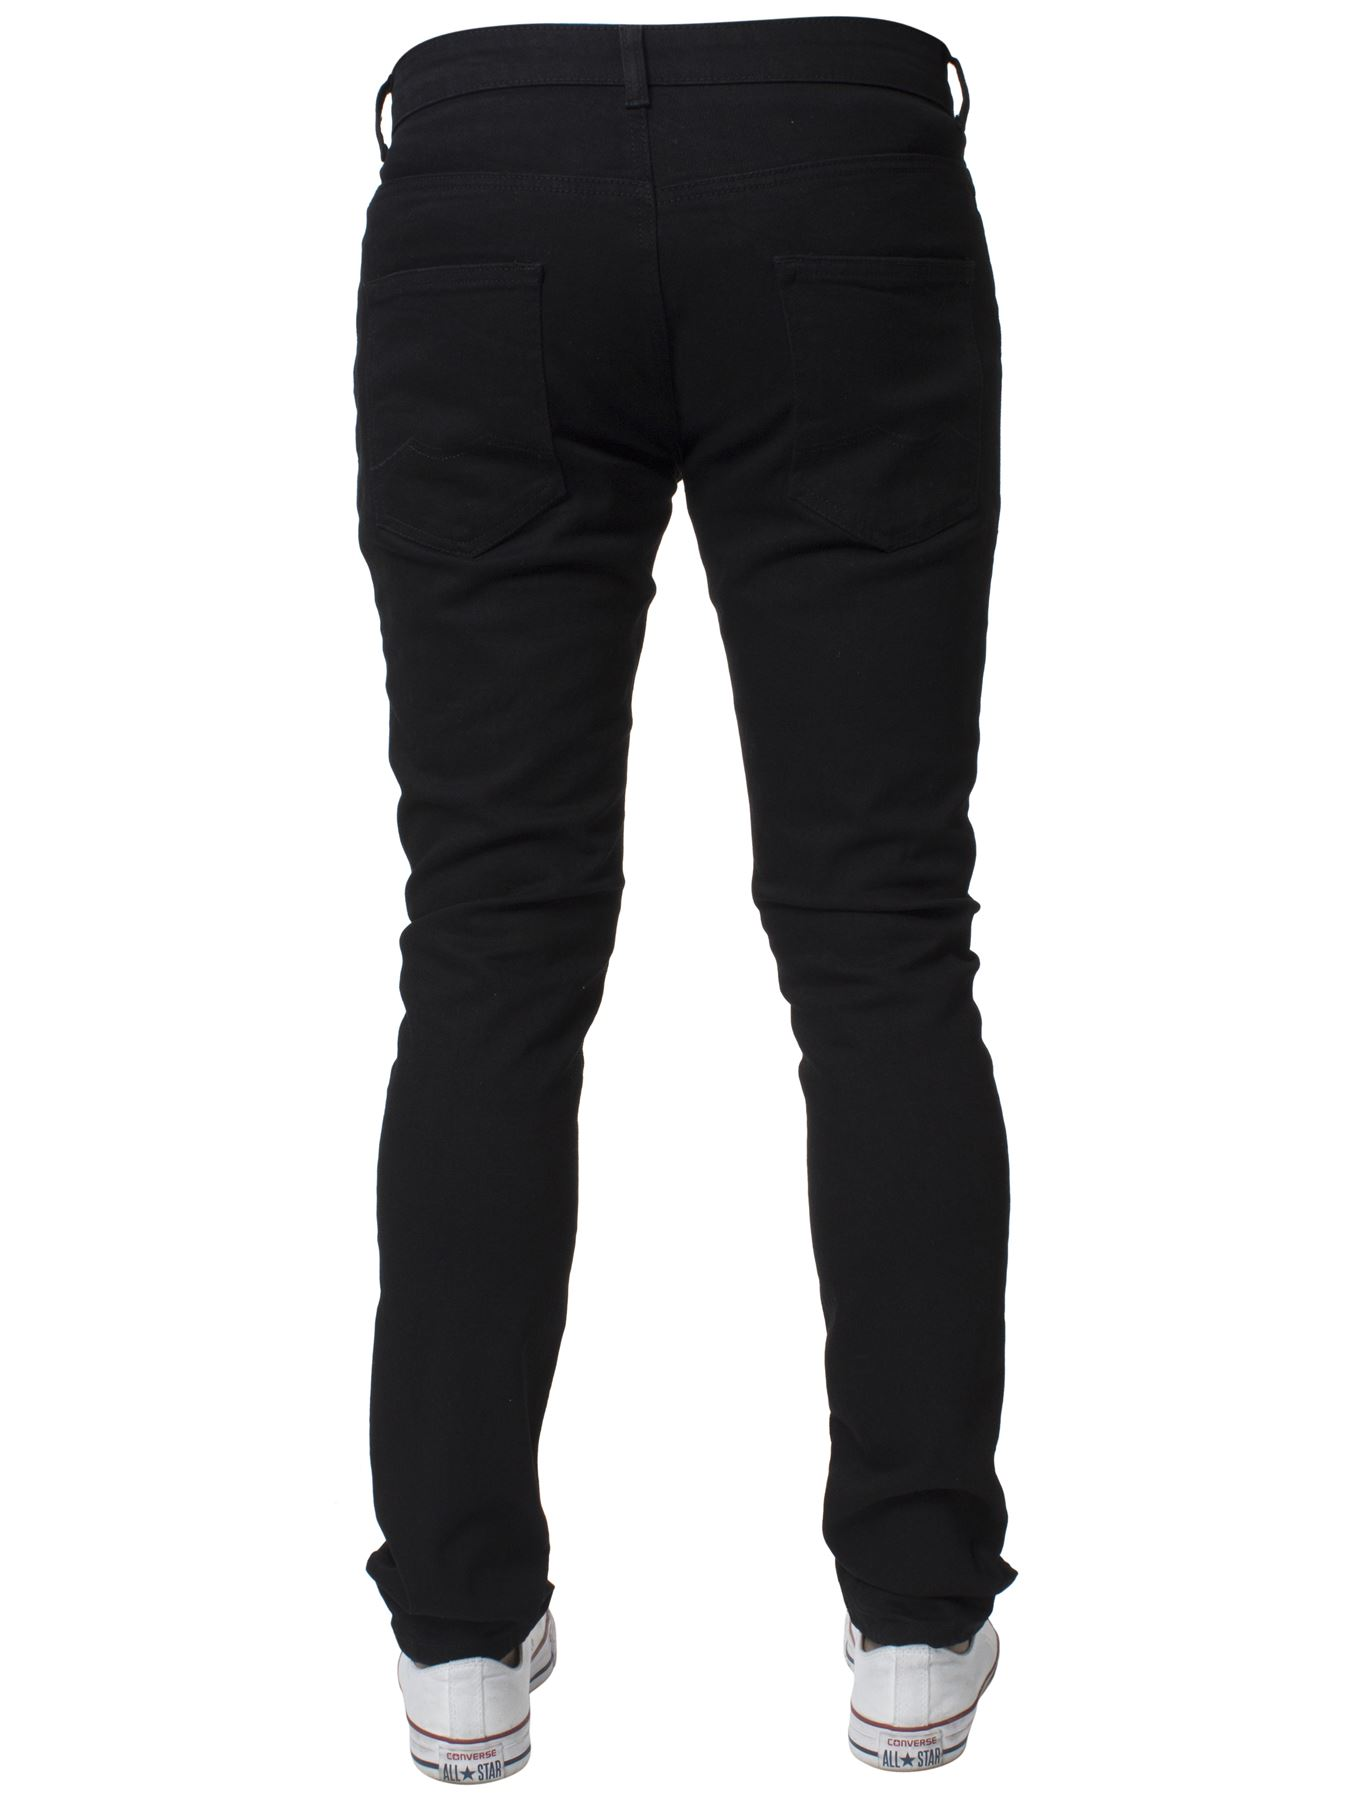 Mens-Skinny-Stretch-Jeans-Slim-Fit-Flex-Denim-Trousers-Pants-King-Sizes-by-Kruze thumbnail 6